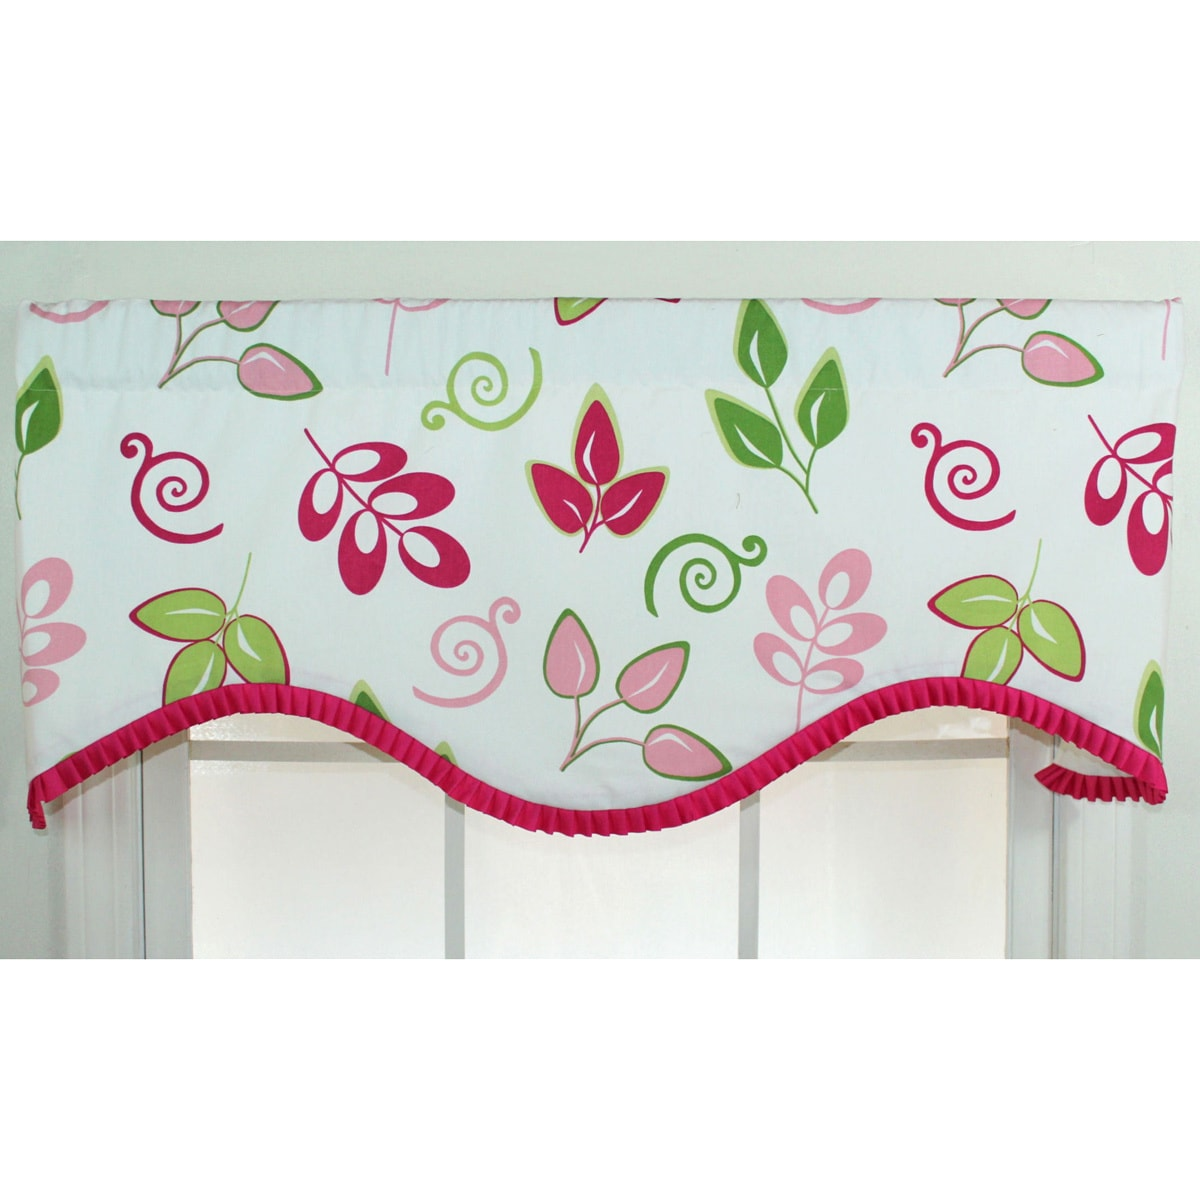 Rlf Home Gracious Leaves Cornice Window Valance at Sears.com